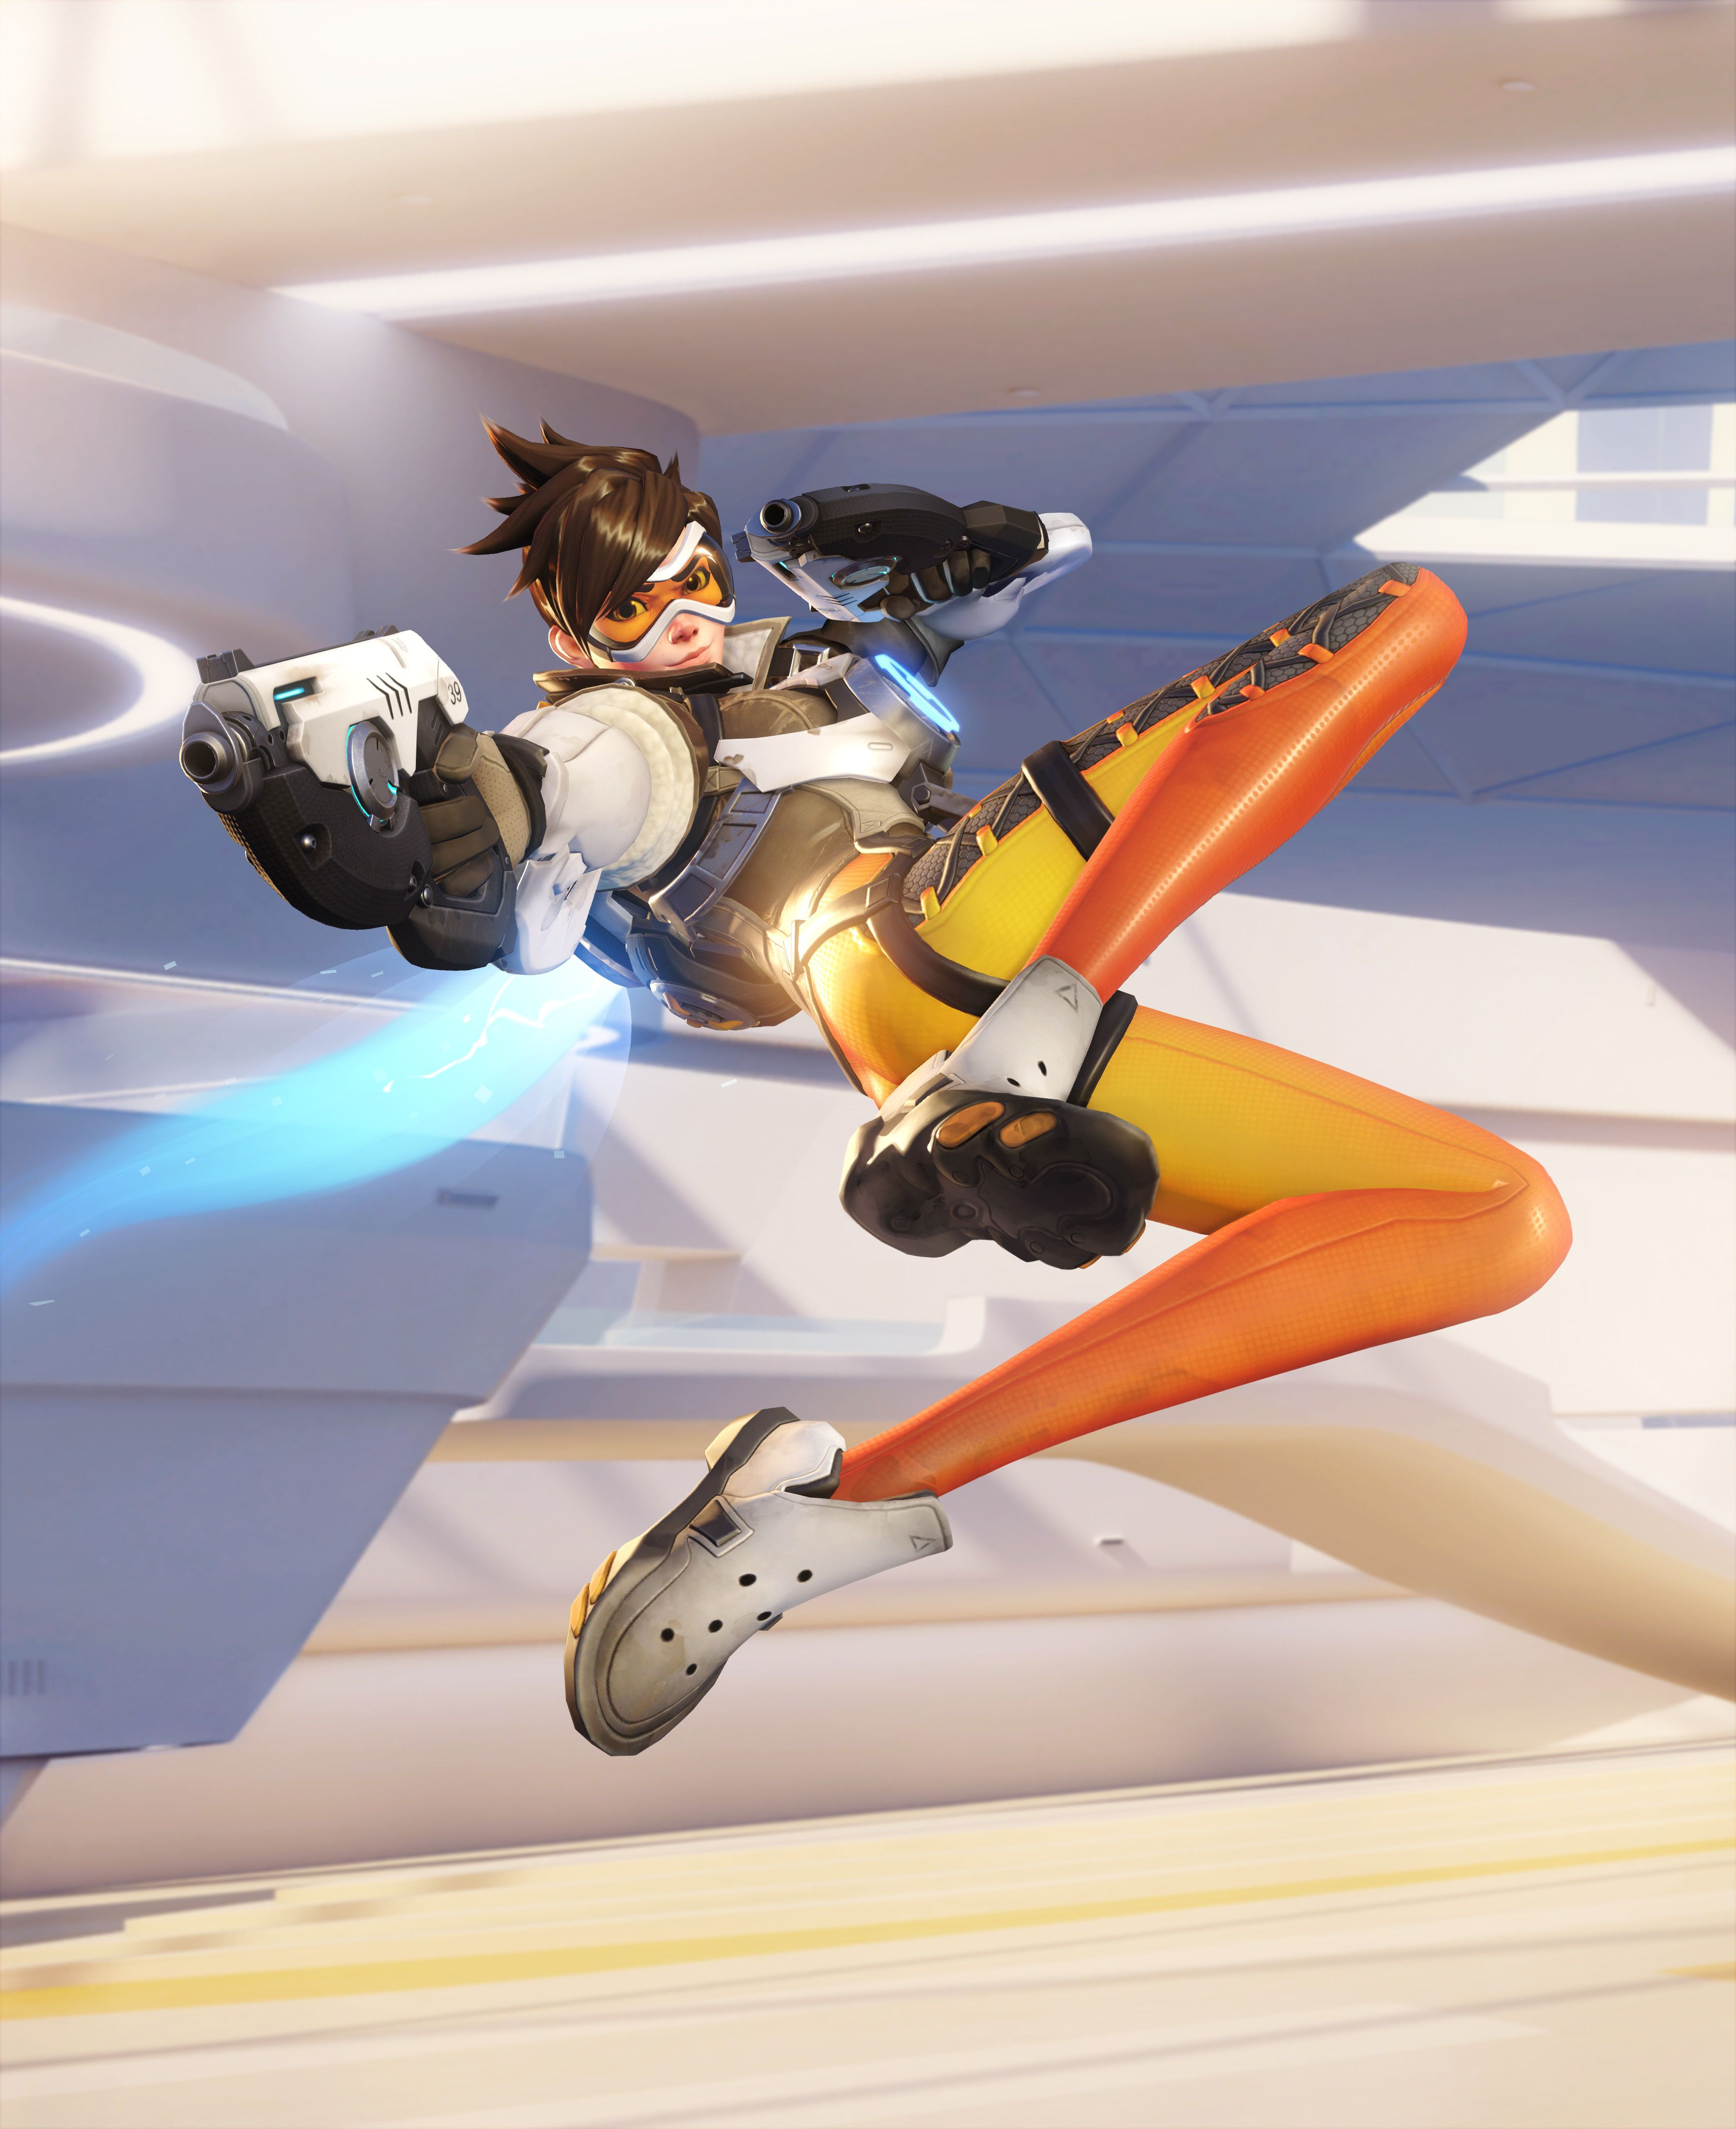 Overwatch Character Design Analysis : A collection of high res overwatch pics from blizzcon